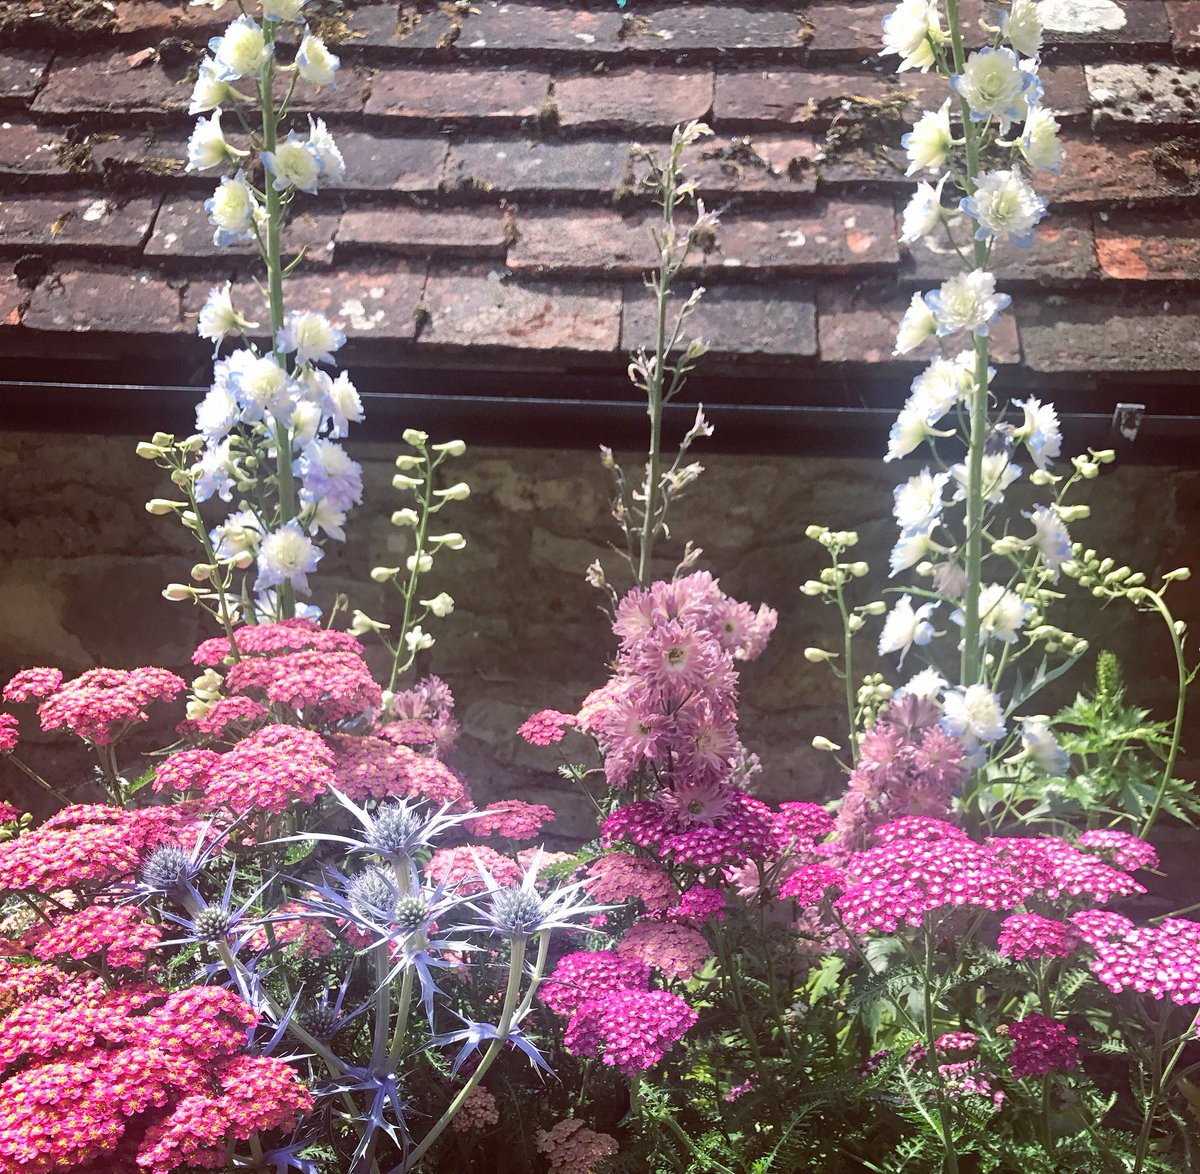 Lovely Delphiniums and the Plant of the moment Sea Holly ???????? https://t.co/aZFpkTh0Yb